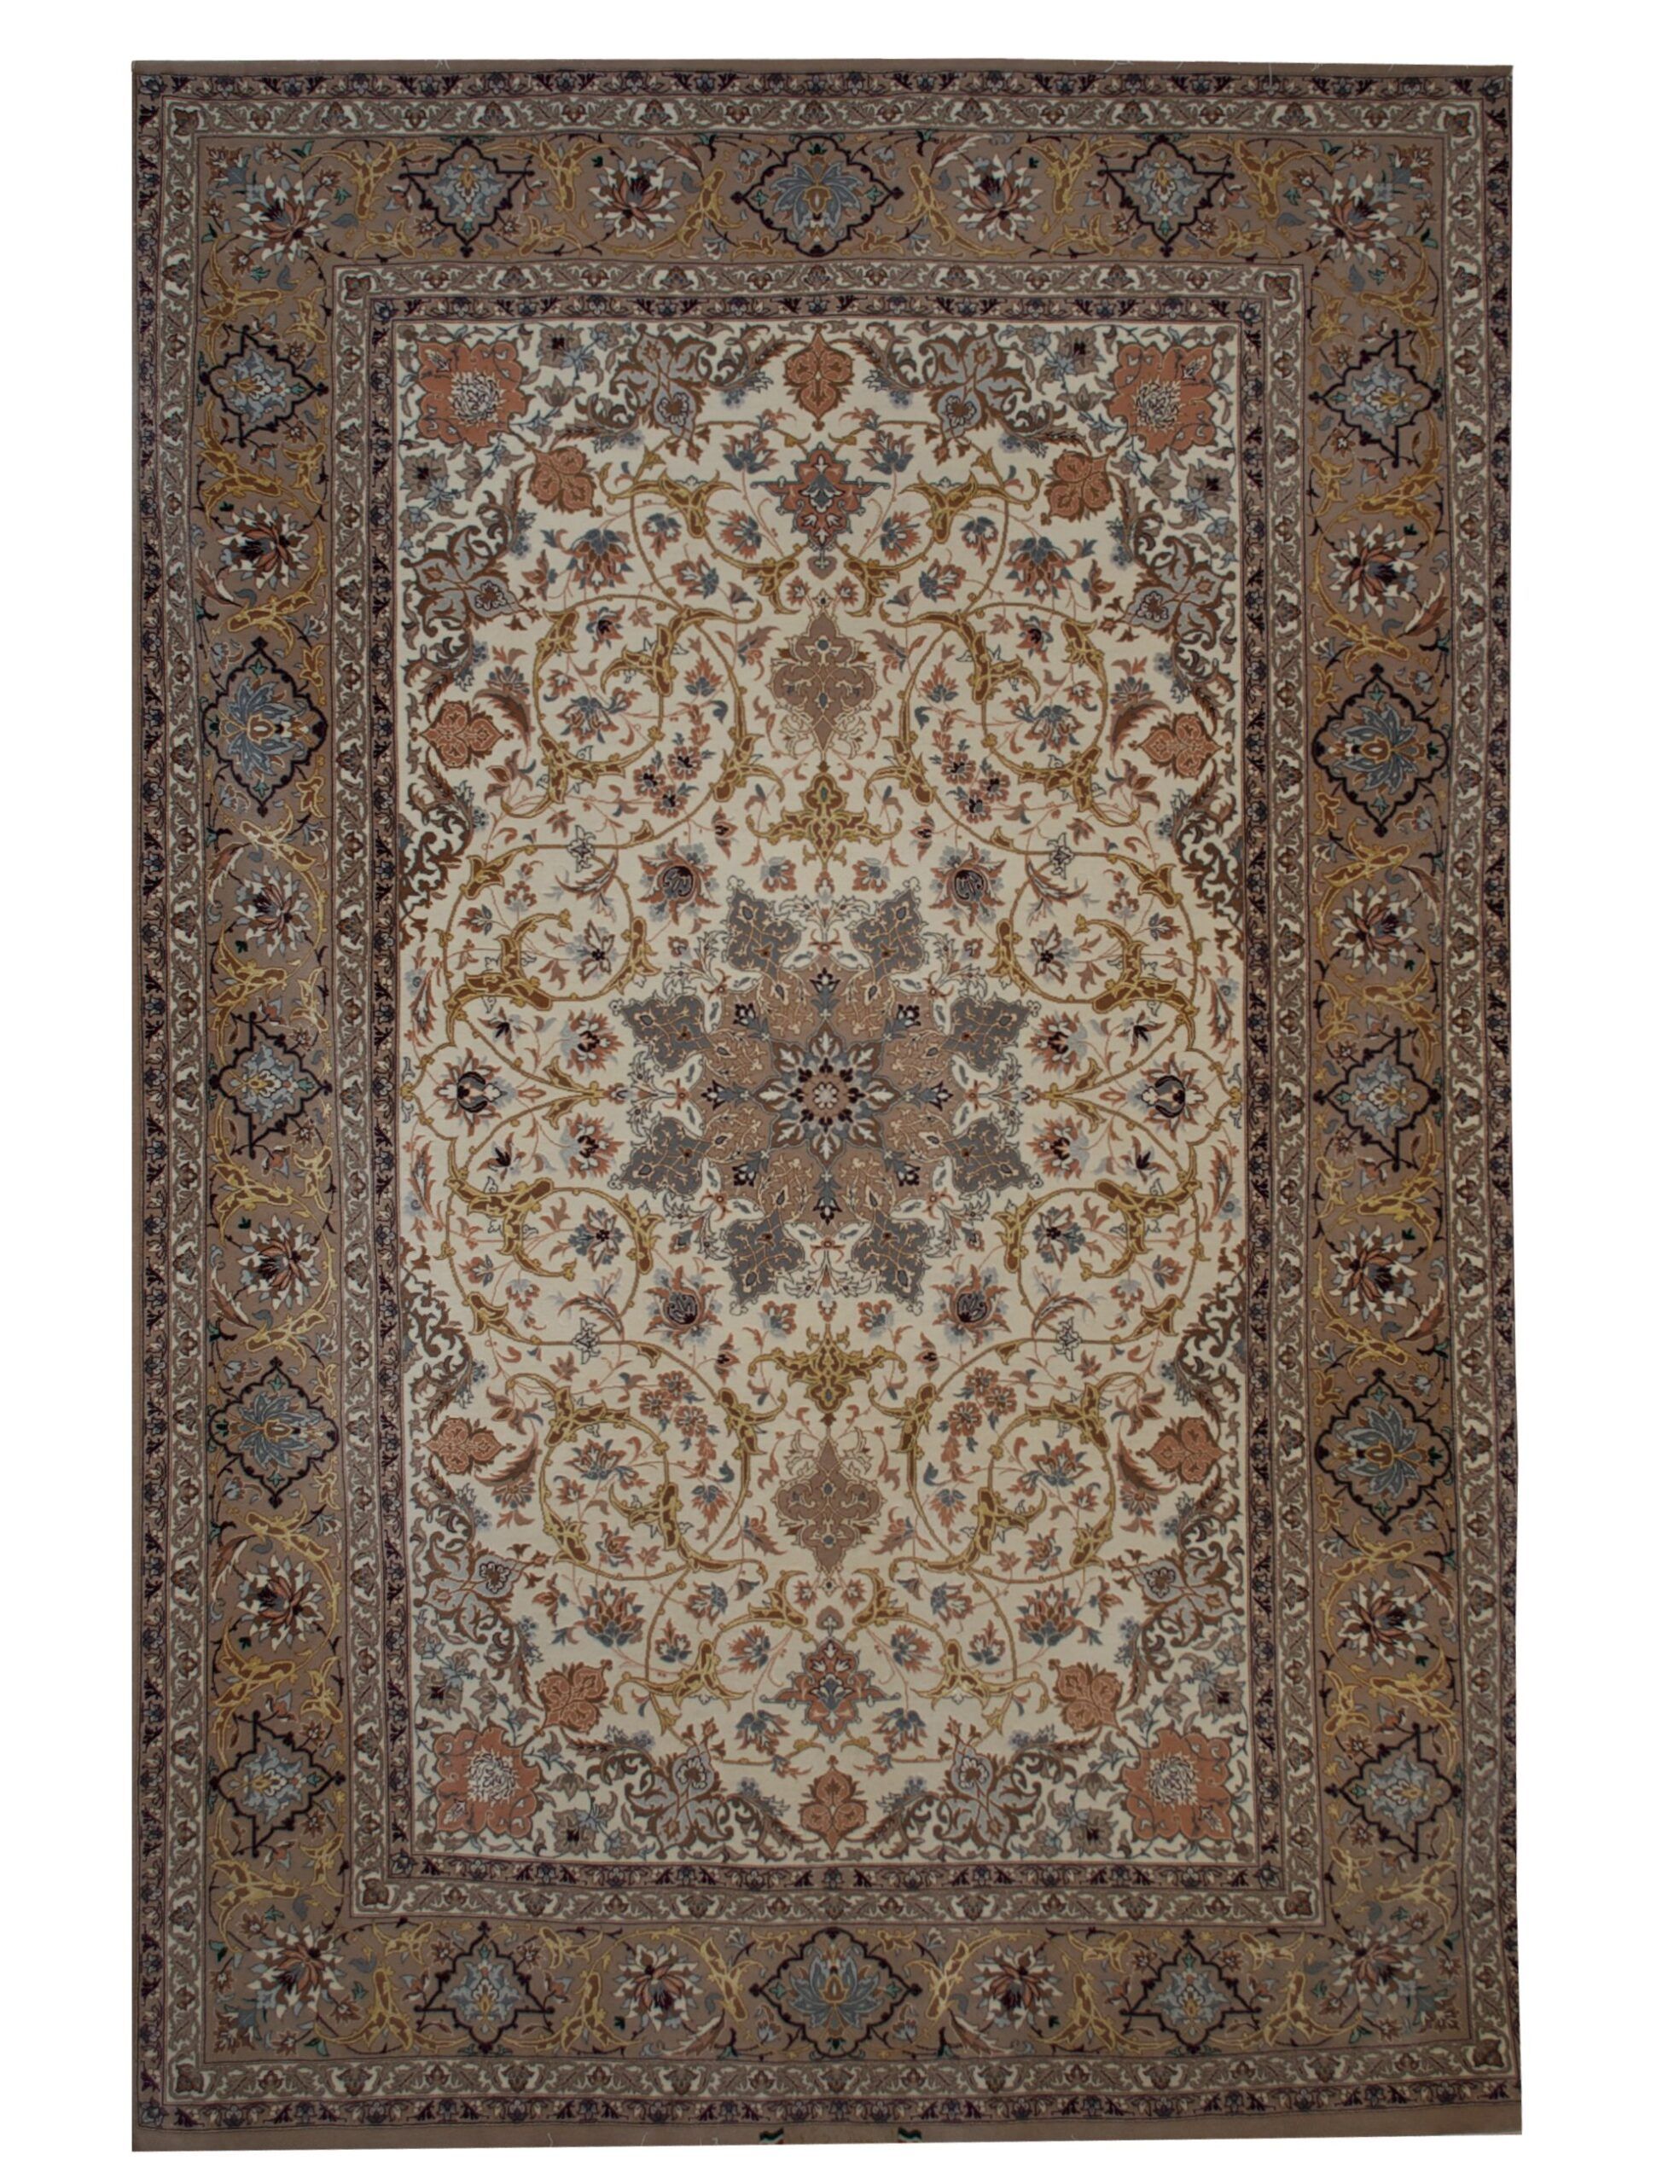 "Persian Esfahan 5' x 7' 5"" - Shabahang Royal Carpet"